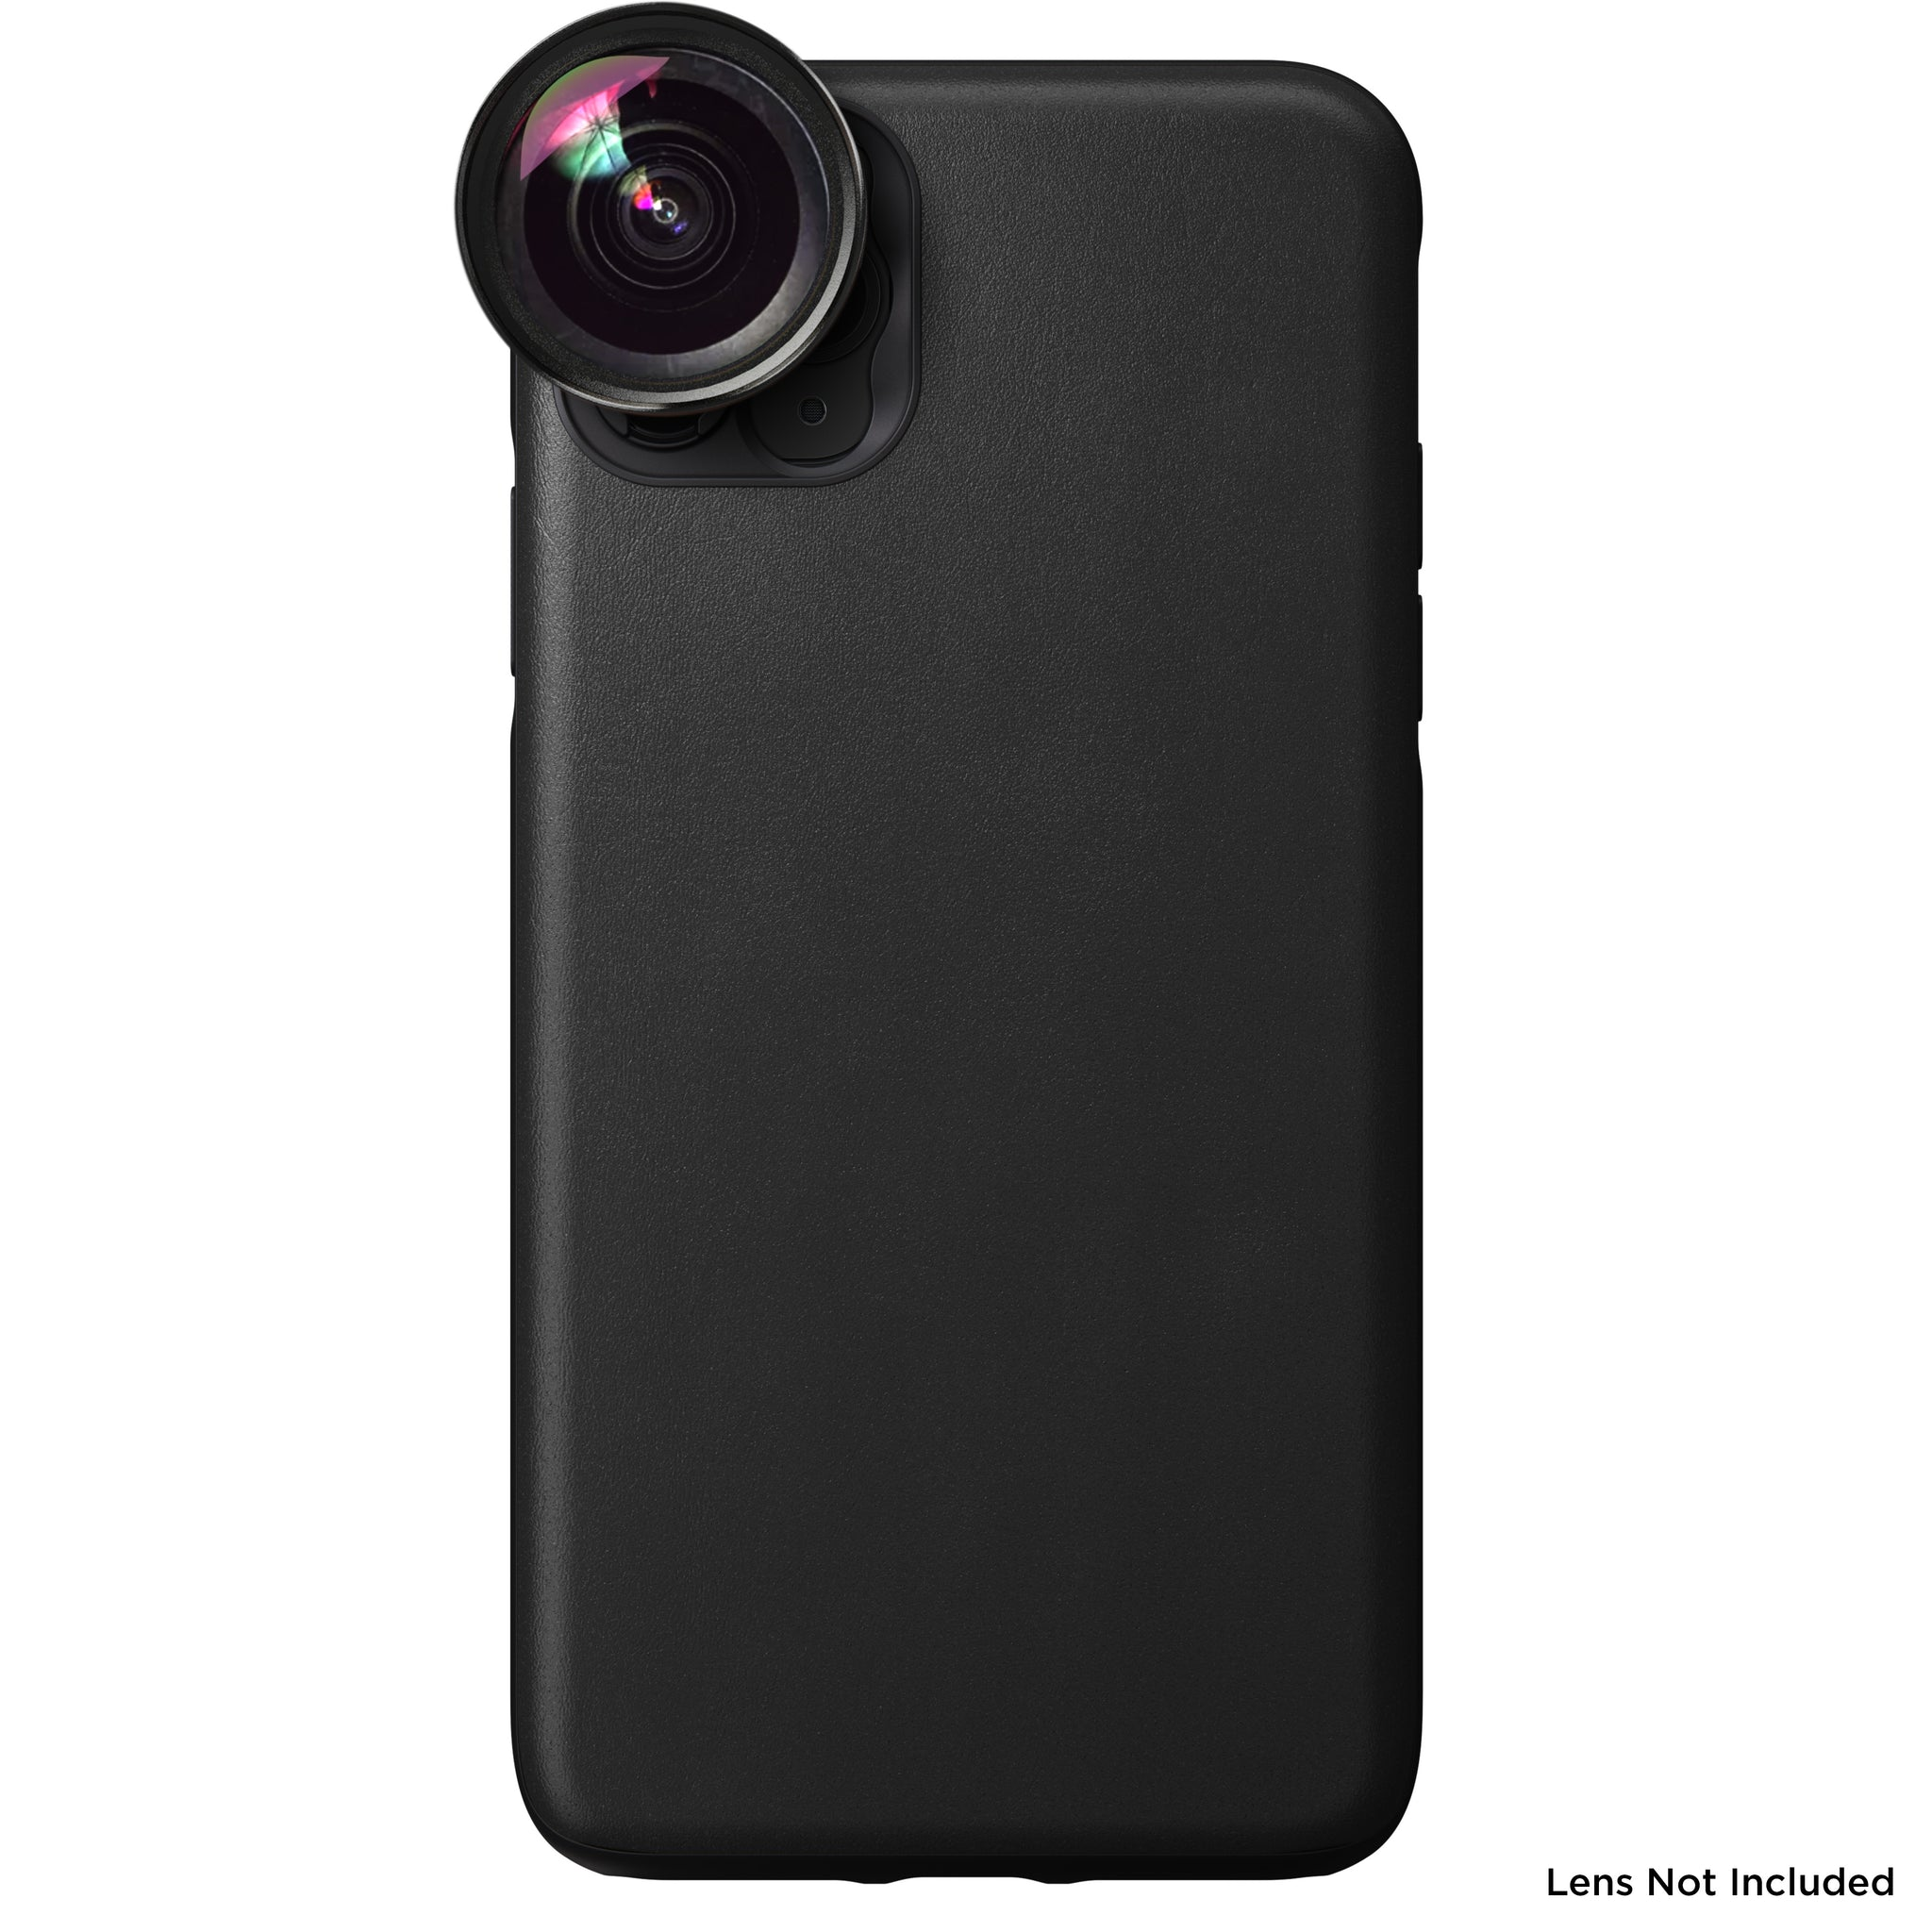 Nomad x Moment Lens Rugged Case for iPhone 11 Pro Max - Black